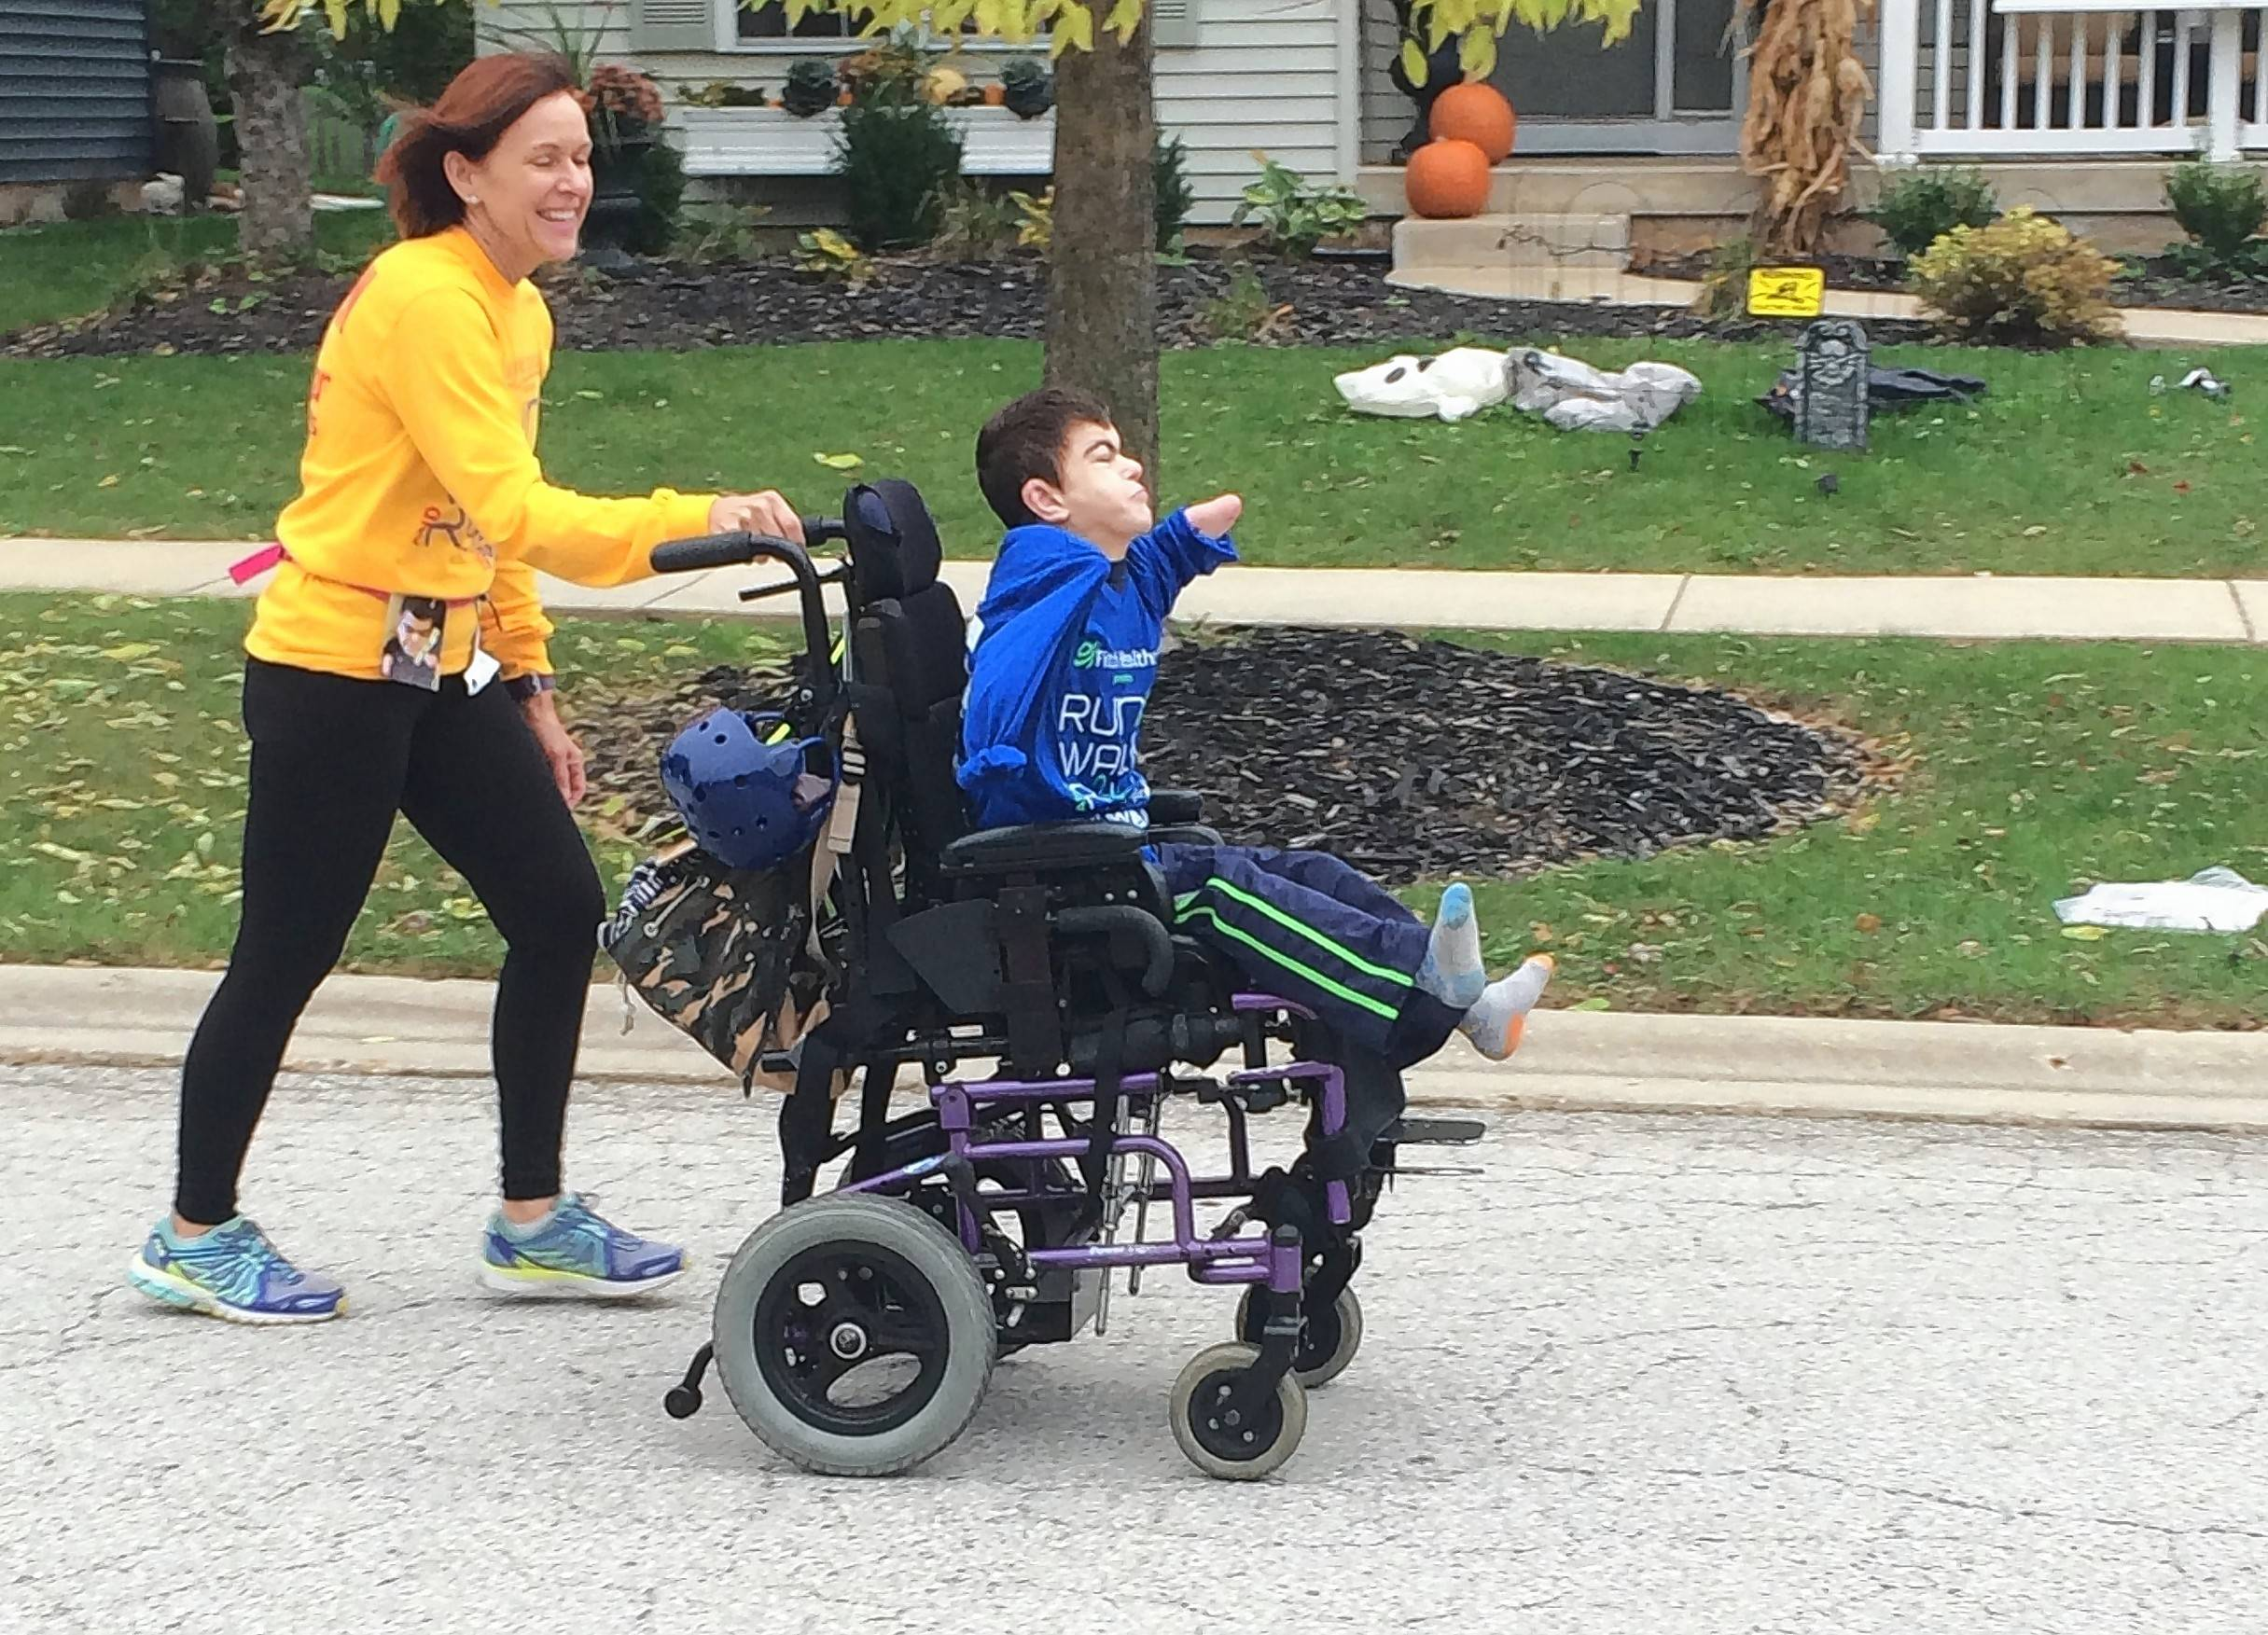 Becky Stewart of Elburn will join her son Tyler in the sixth annual Marklund Run, Walk & Roll on Sunday, Oct. 21, pushing him in a racing wheelchair. Tyler is a resident of the Marklund Hyde Center in Geneva.